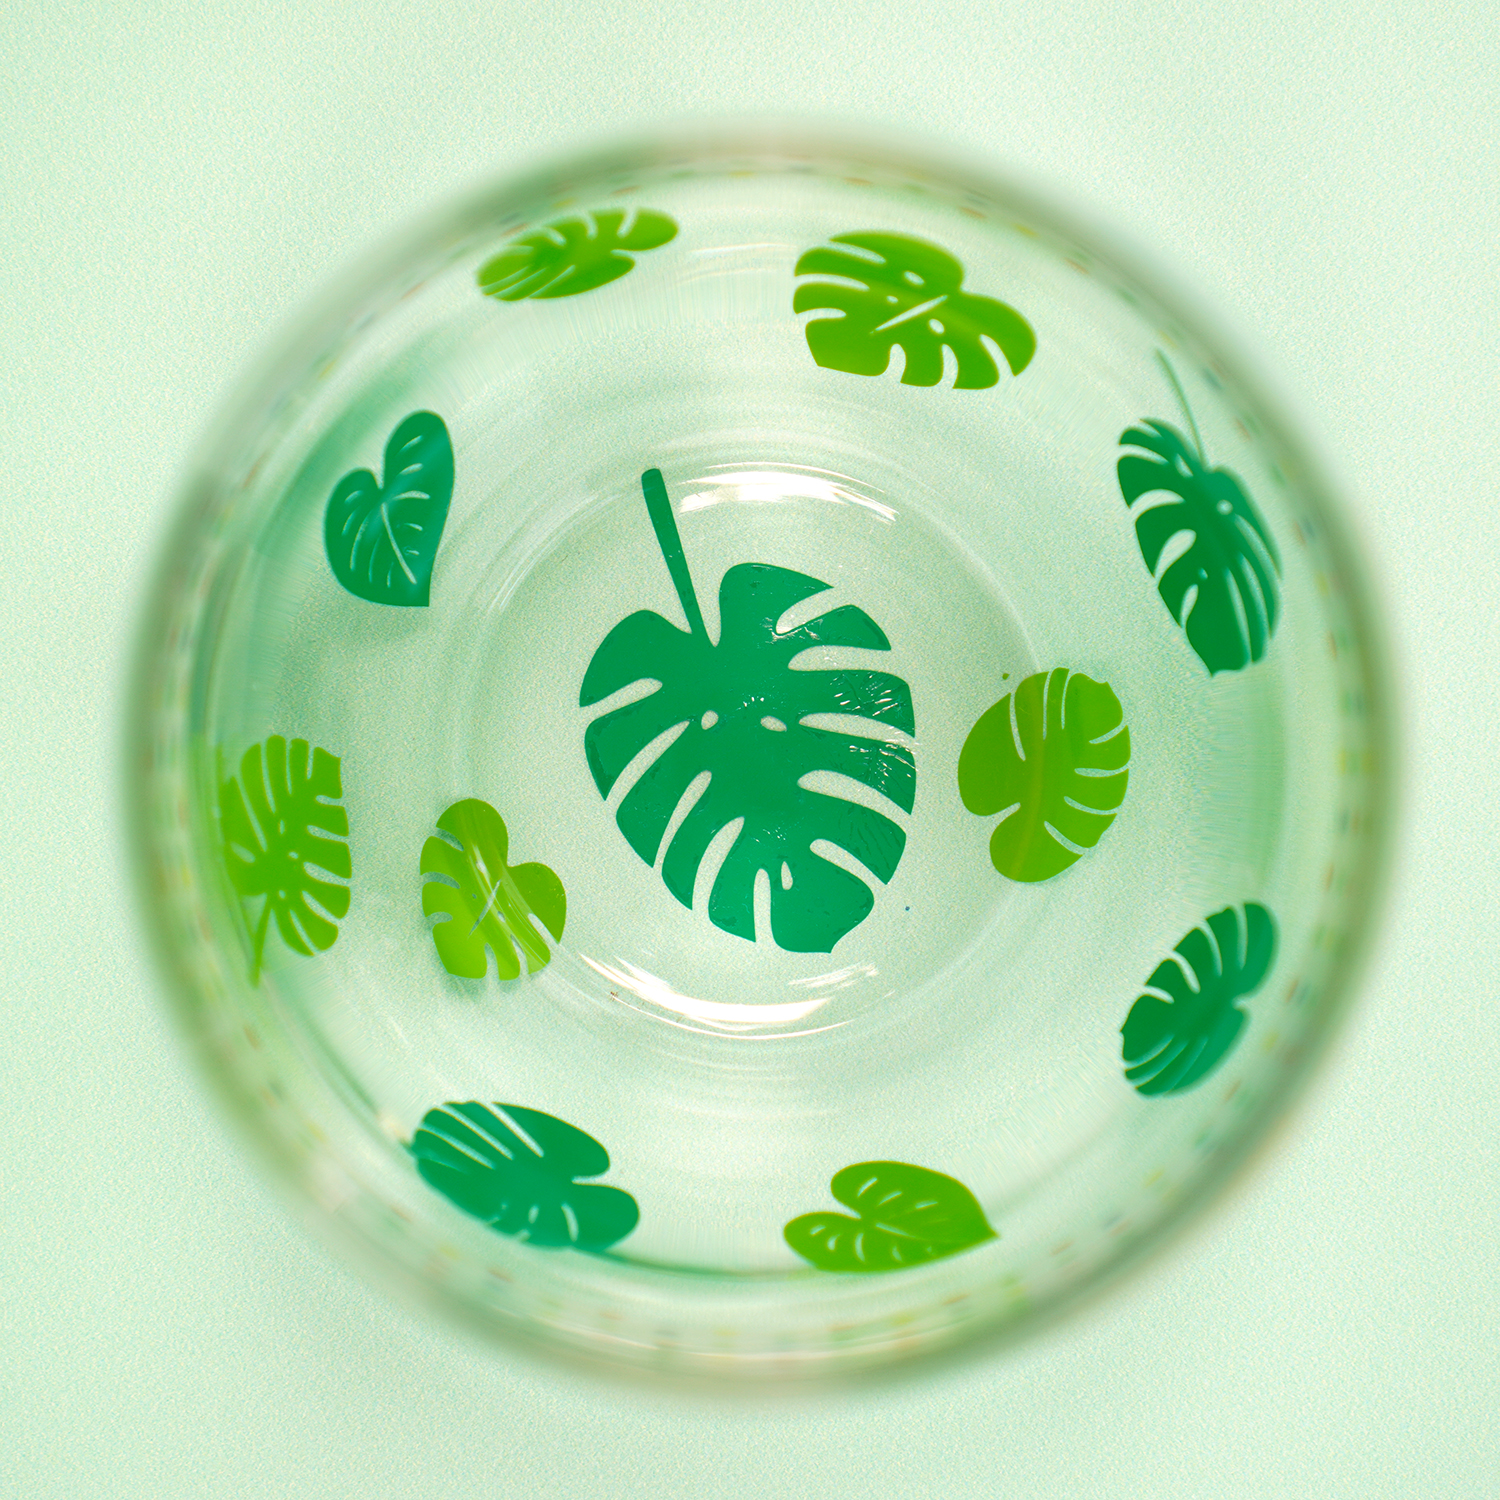 Inside of wine glass with tropical monstera leaves in different shades of green